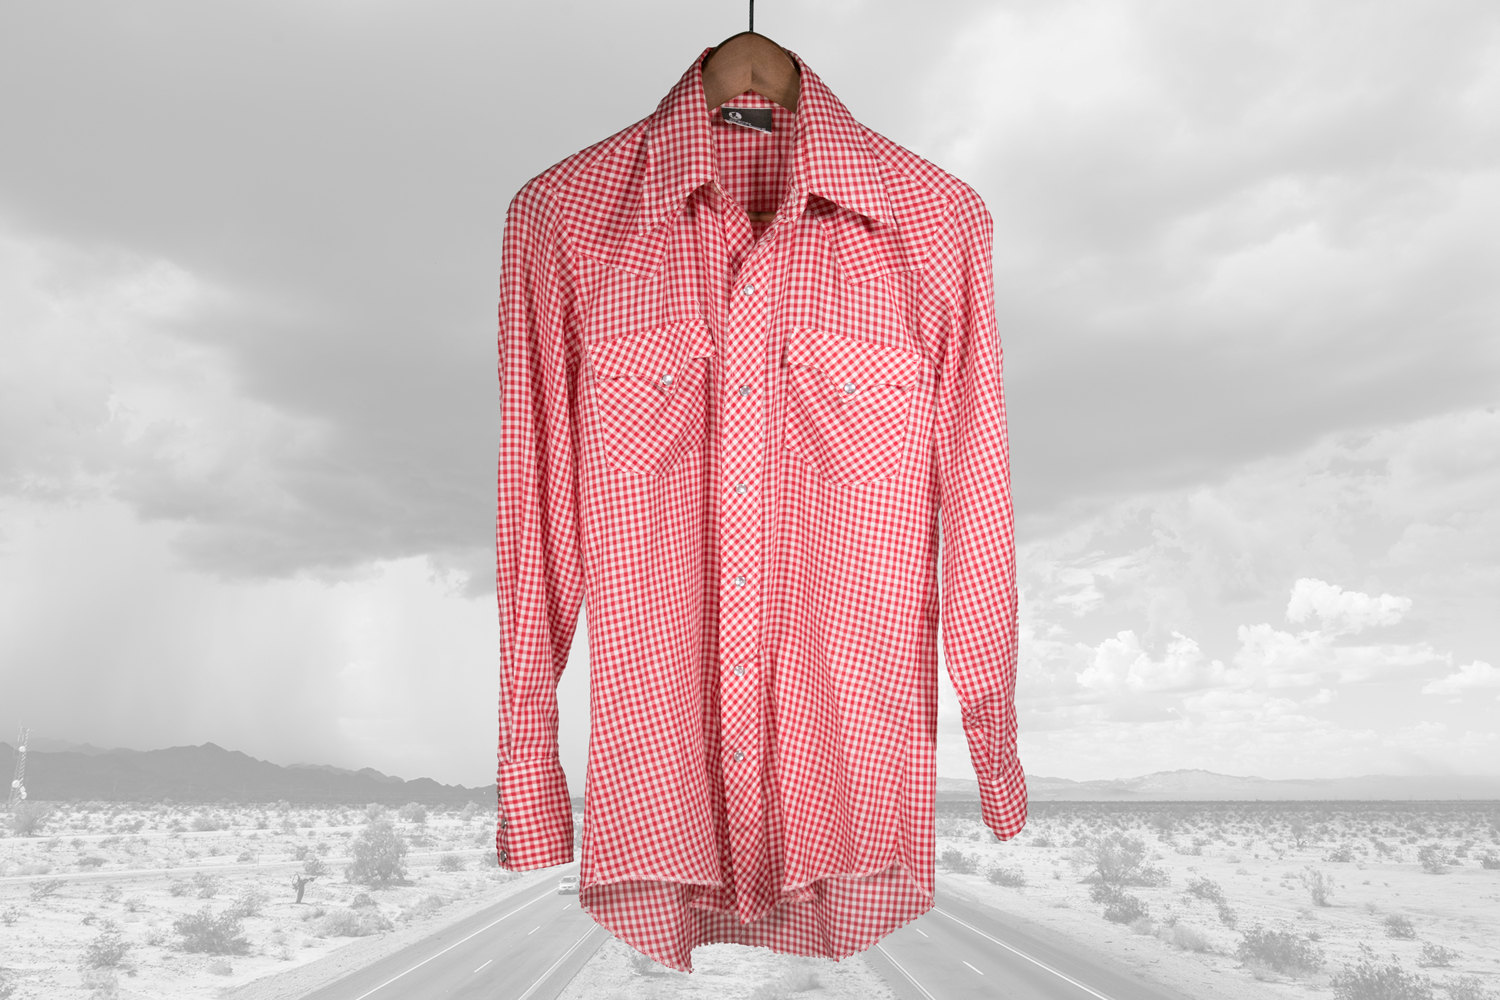 Vintage 1970's JCPenney Western Wear Red Check Country Shirt - Men's Small - Great Lines! - Retro, Indie, Hipster, Rocker